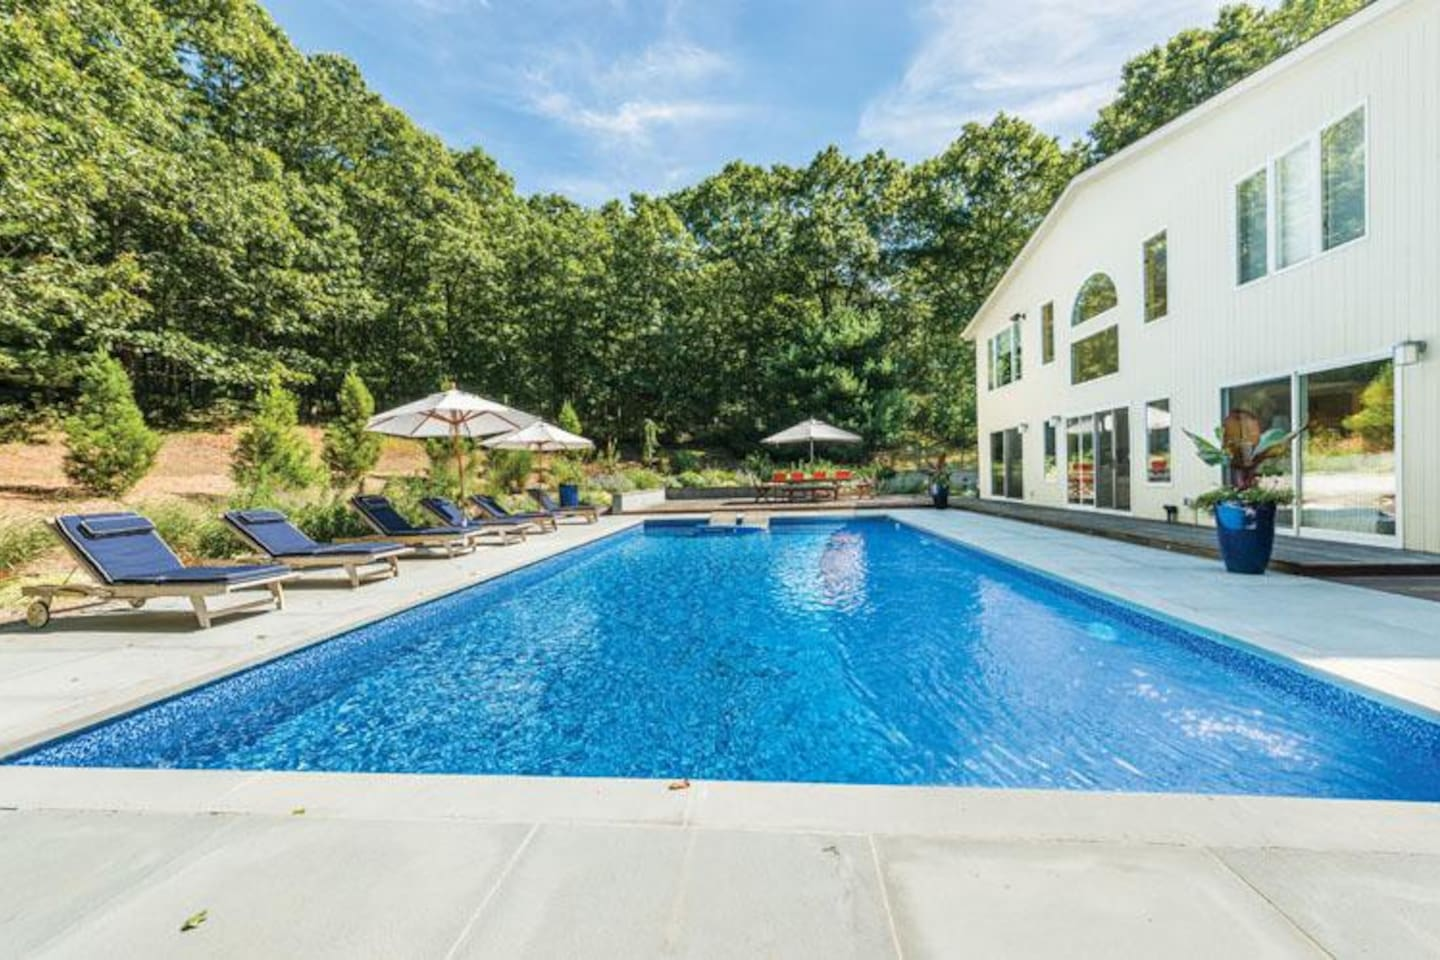 Backyard with salt water pool deck and lounge chairs